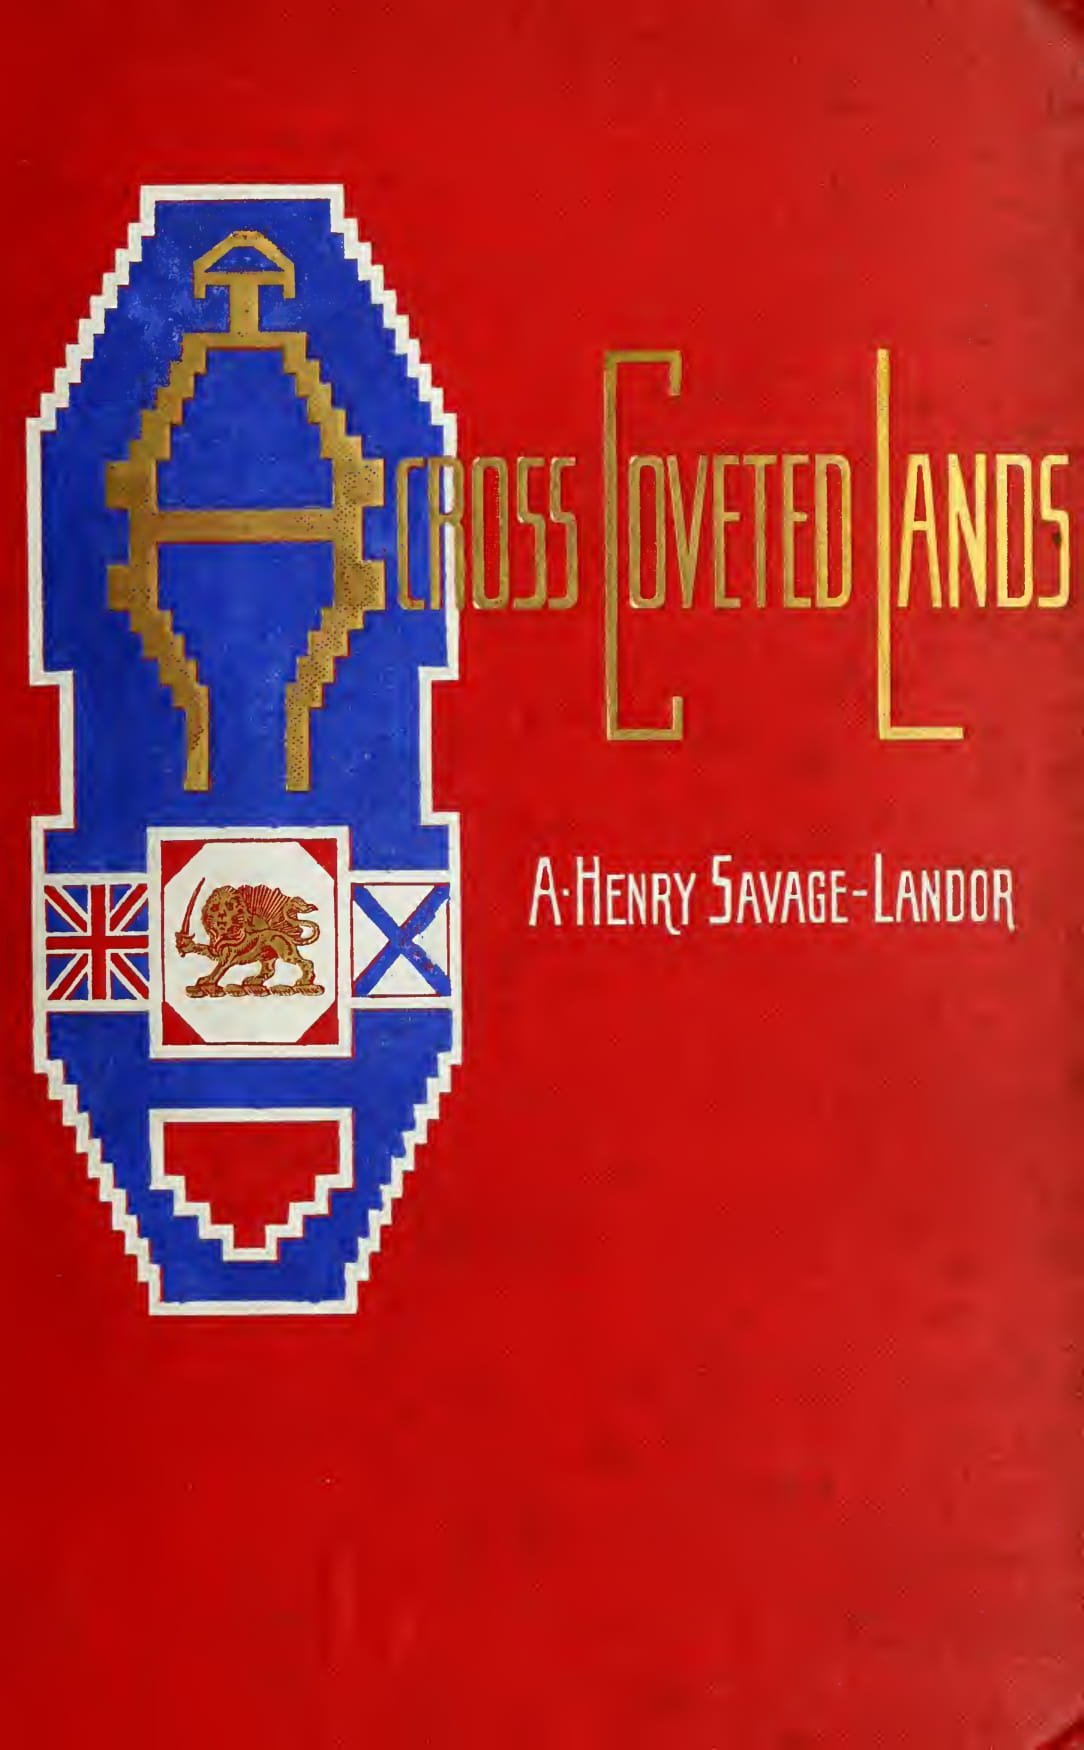 English - Across Coveted Lands Vol. 2